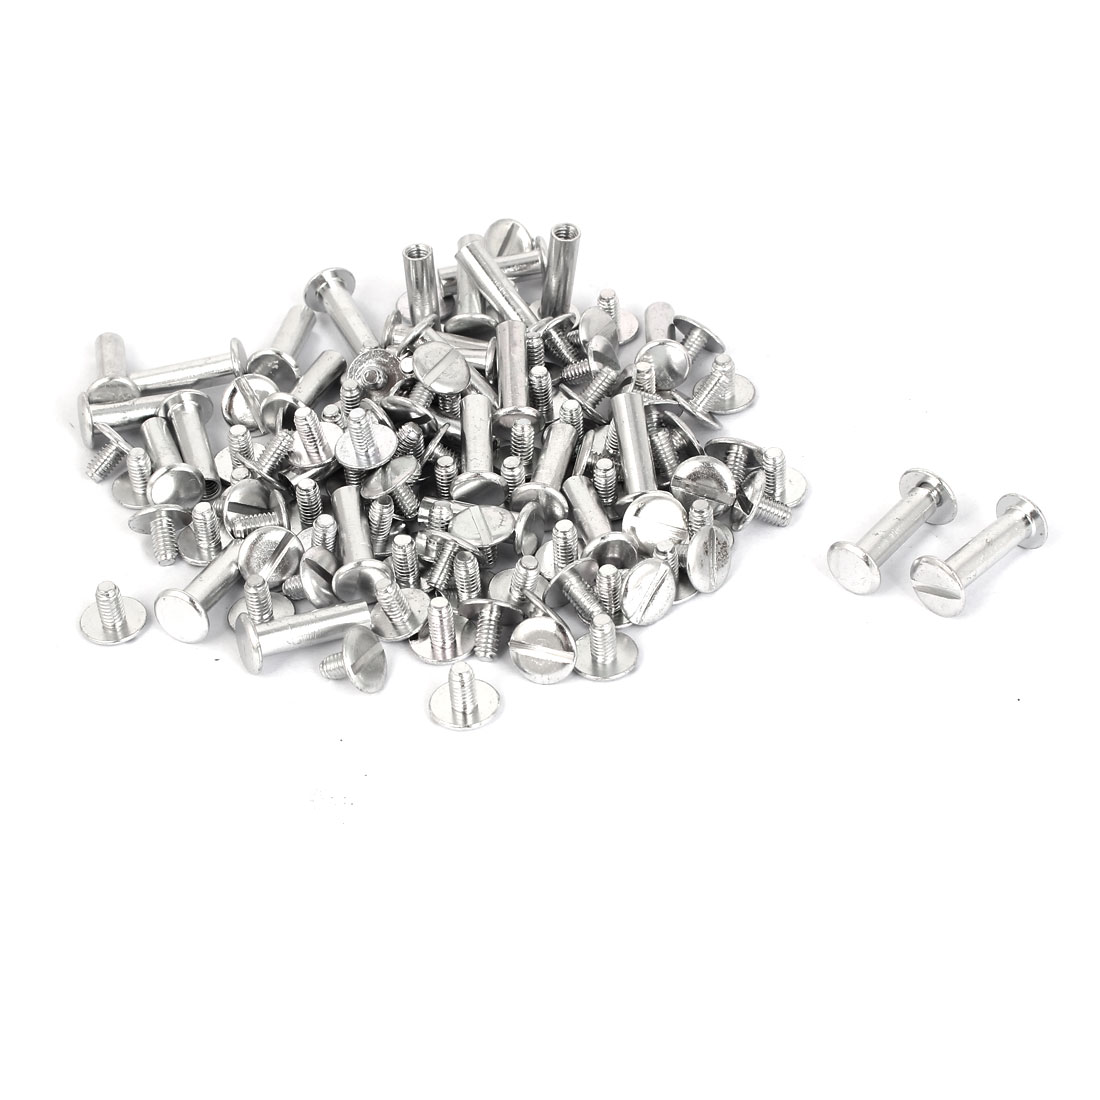 Uxcell M5x18mm Aluminum Chicago Screws Binding Posts Silver Tone (50-pack)